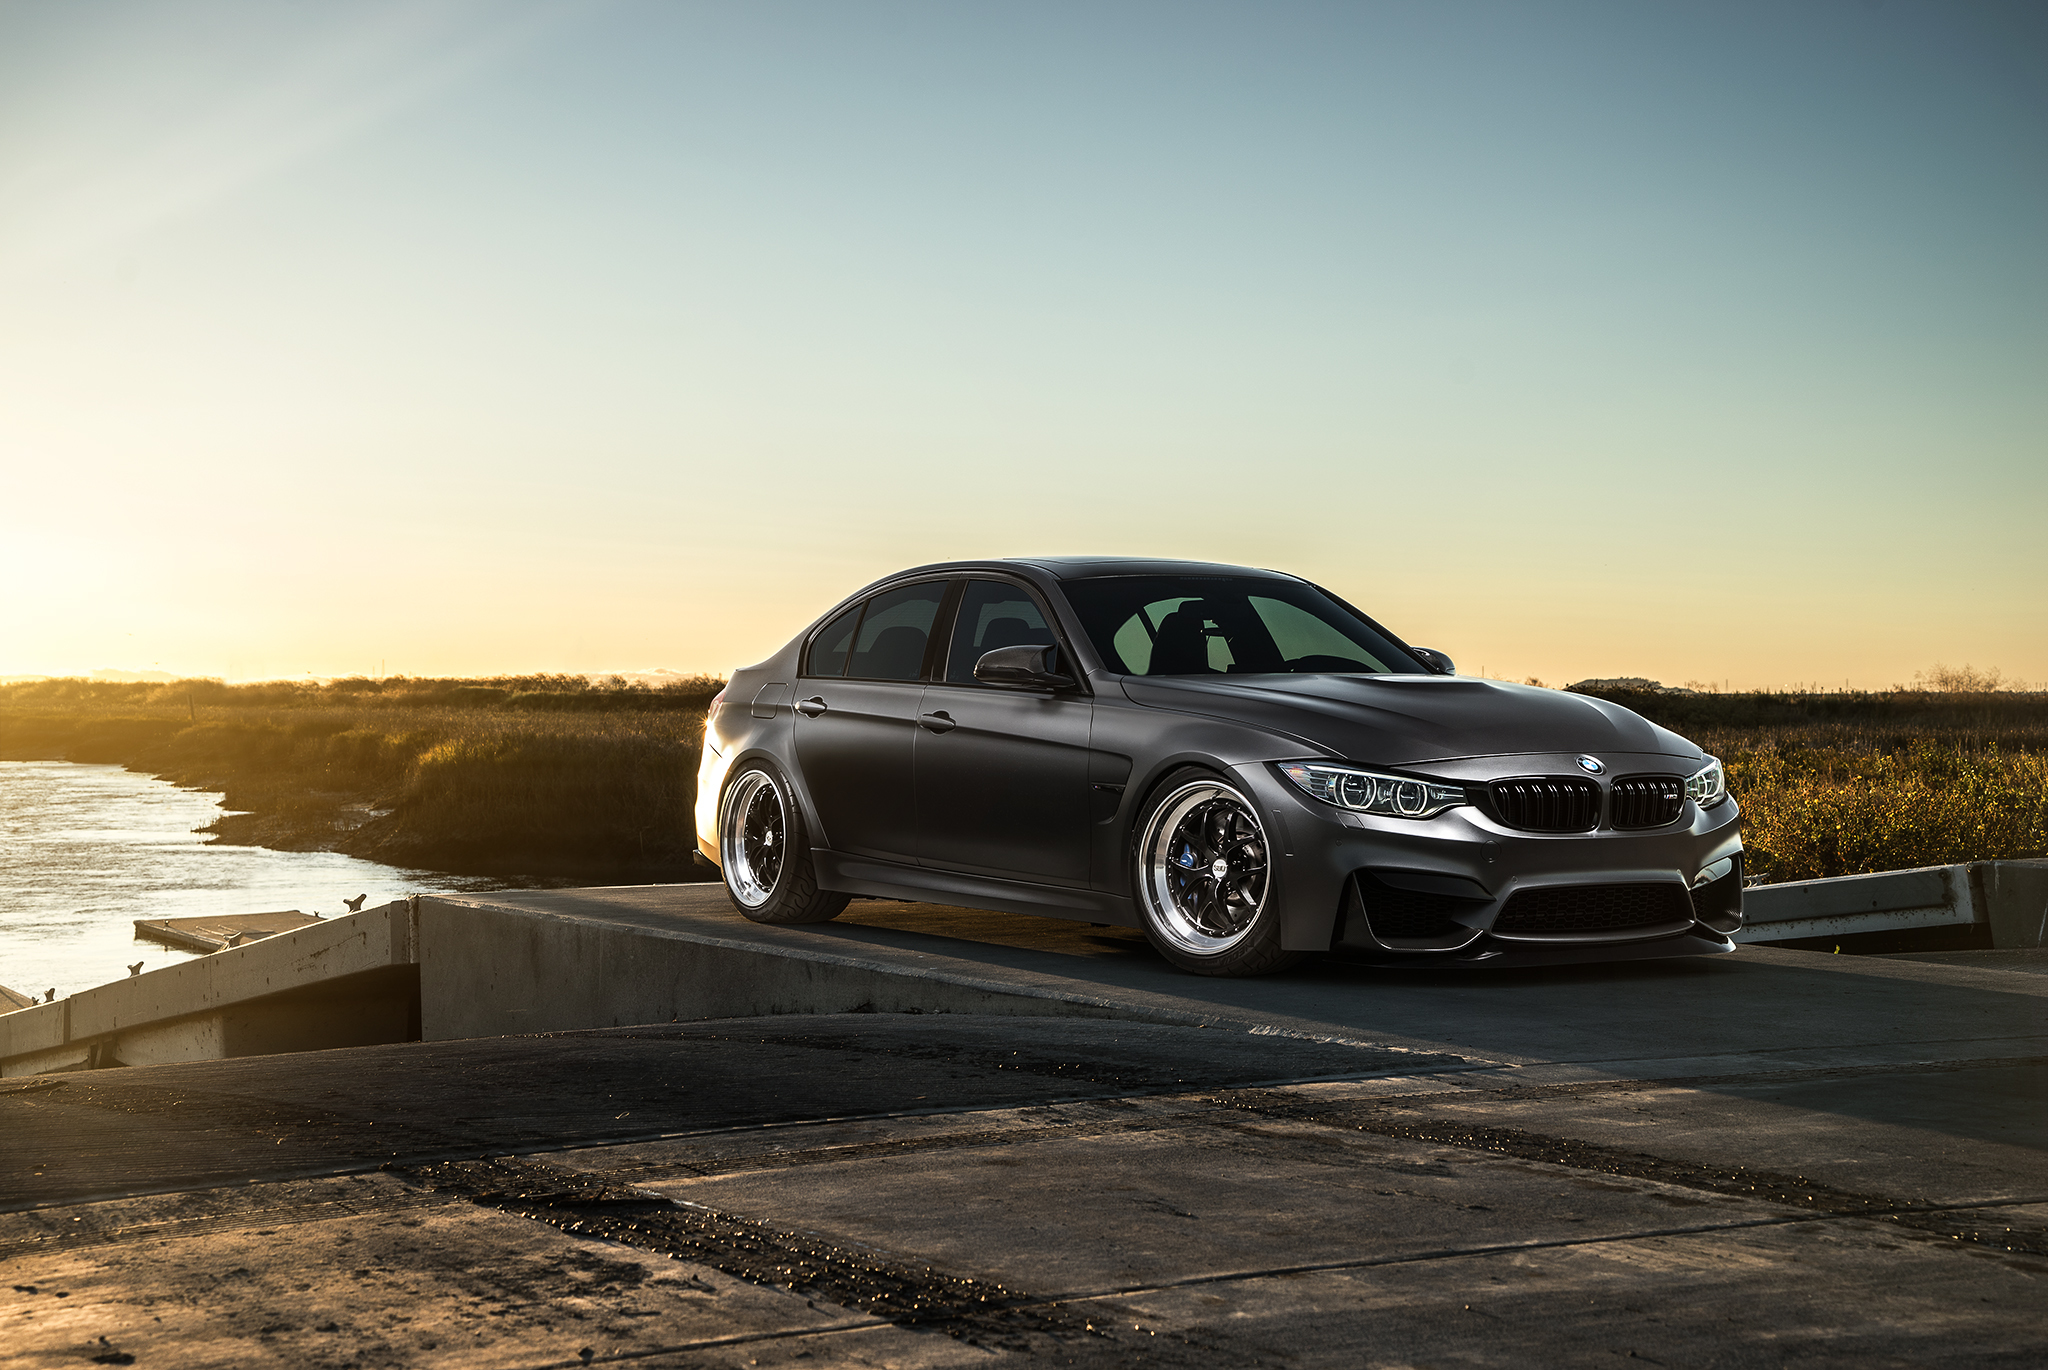 bmw, m3, f80 Wallpaper, HD Cars 4K Wallpapers, Images ...